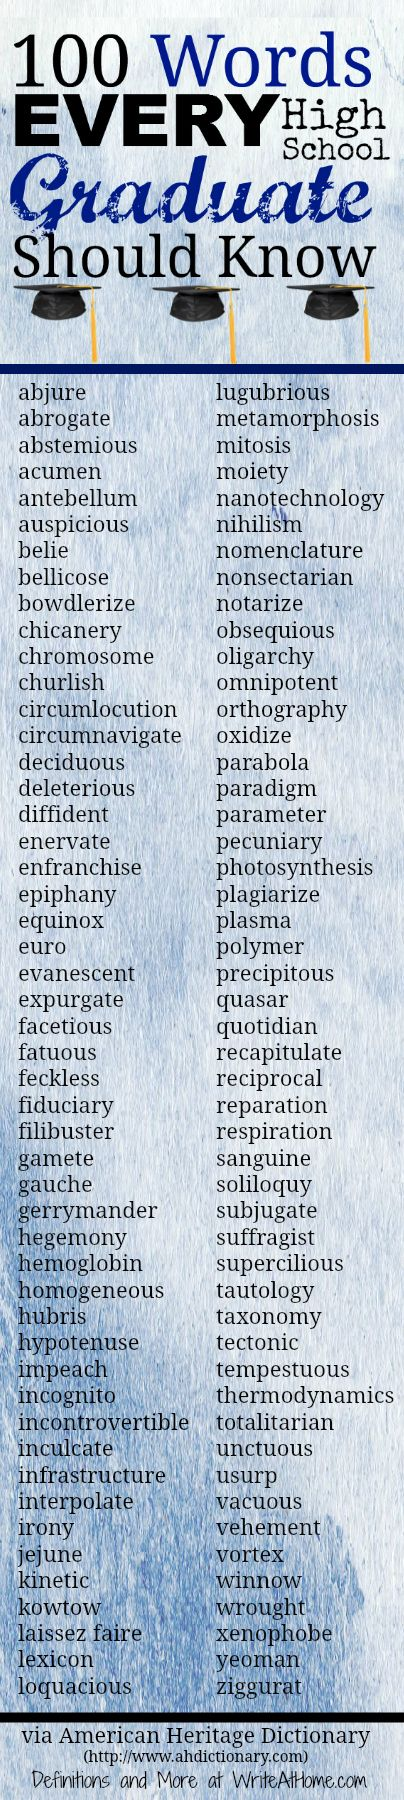 100 Words Every High School Graduate Should Know via American Heritage Dictionary